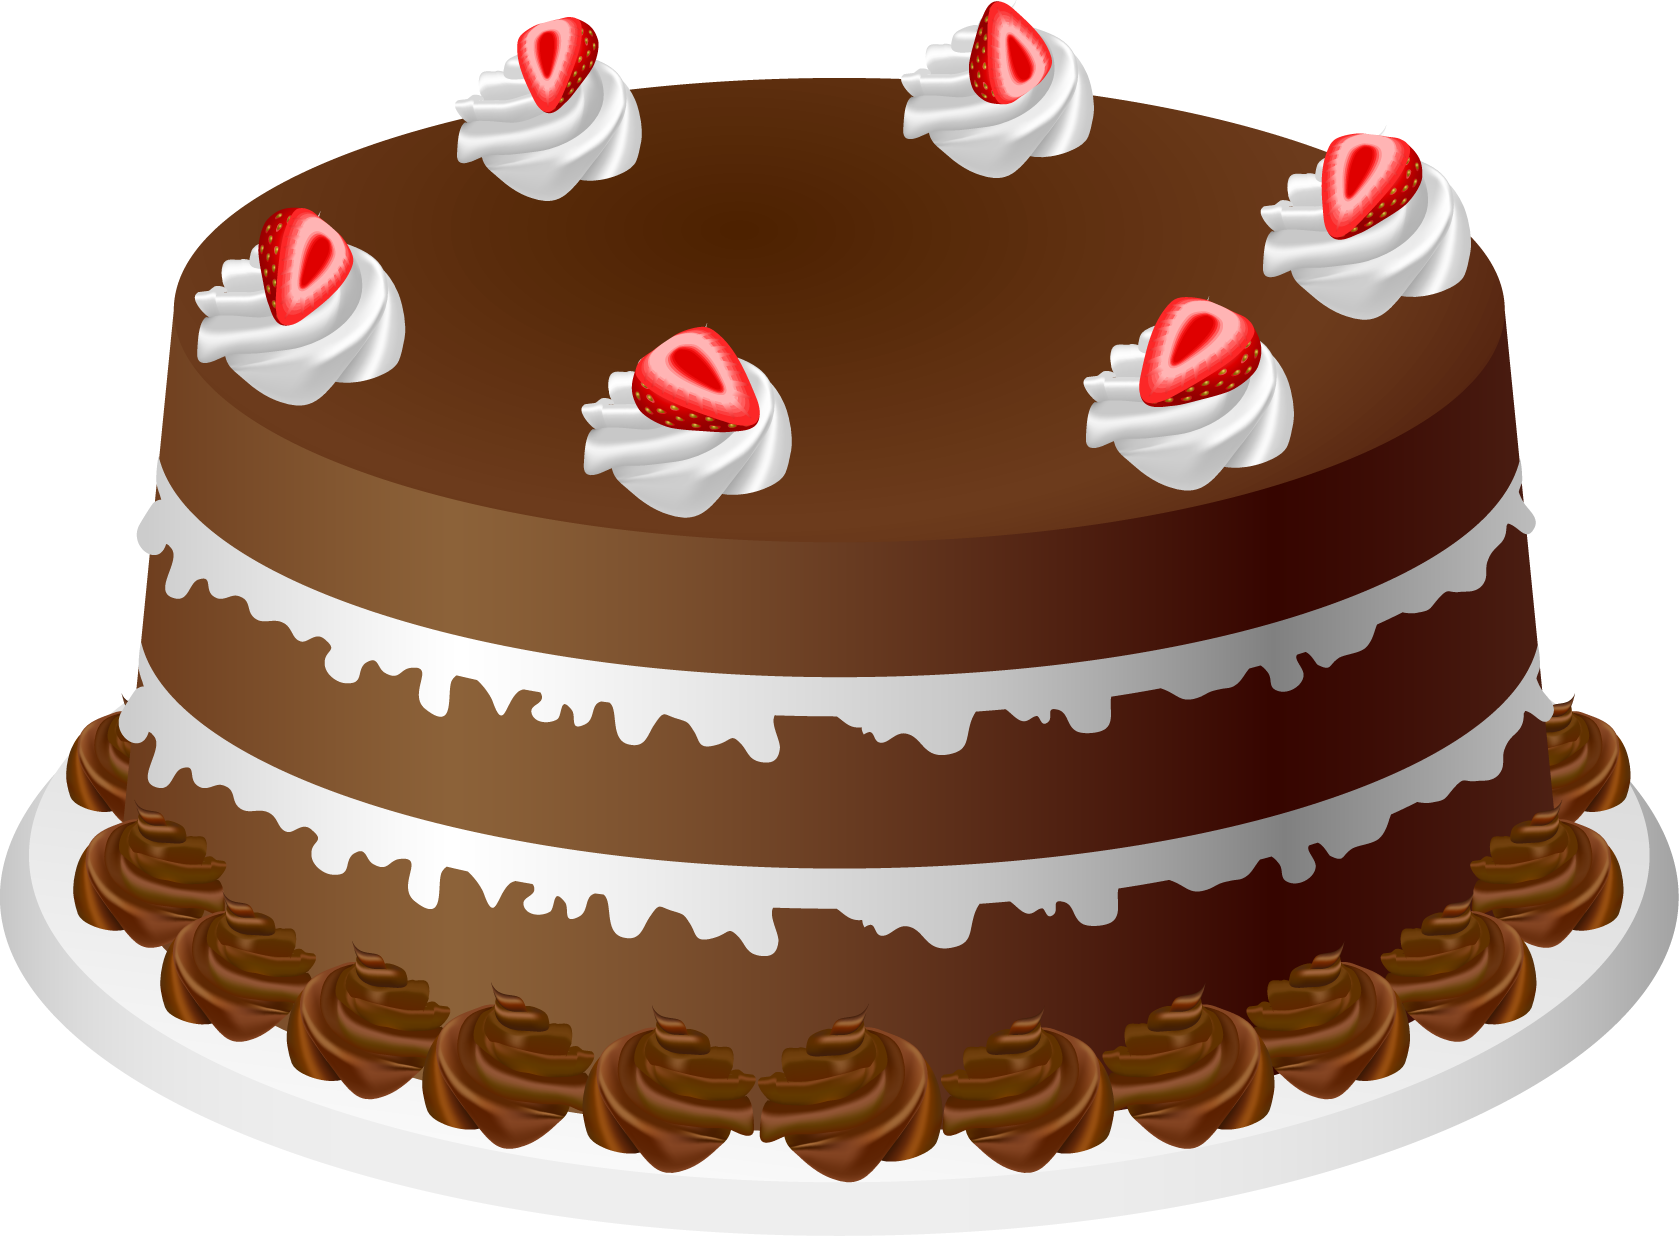 Sweets clipart bakery product. Free magazine cliparts download